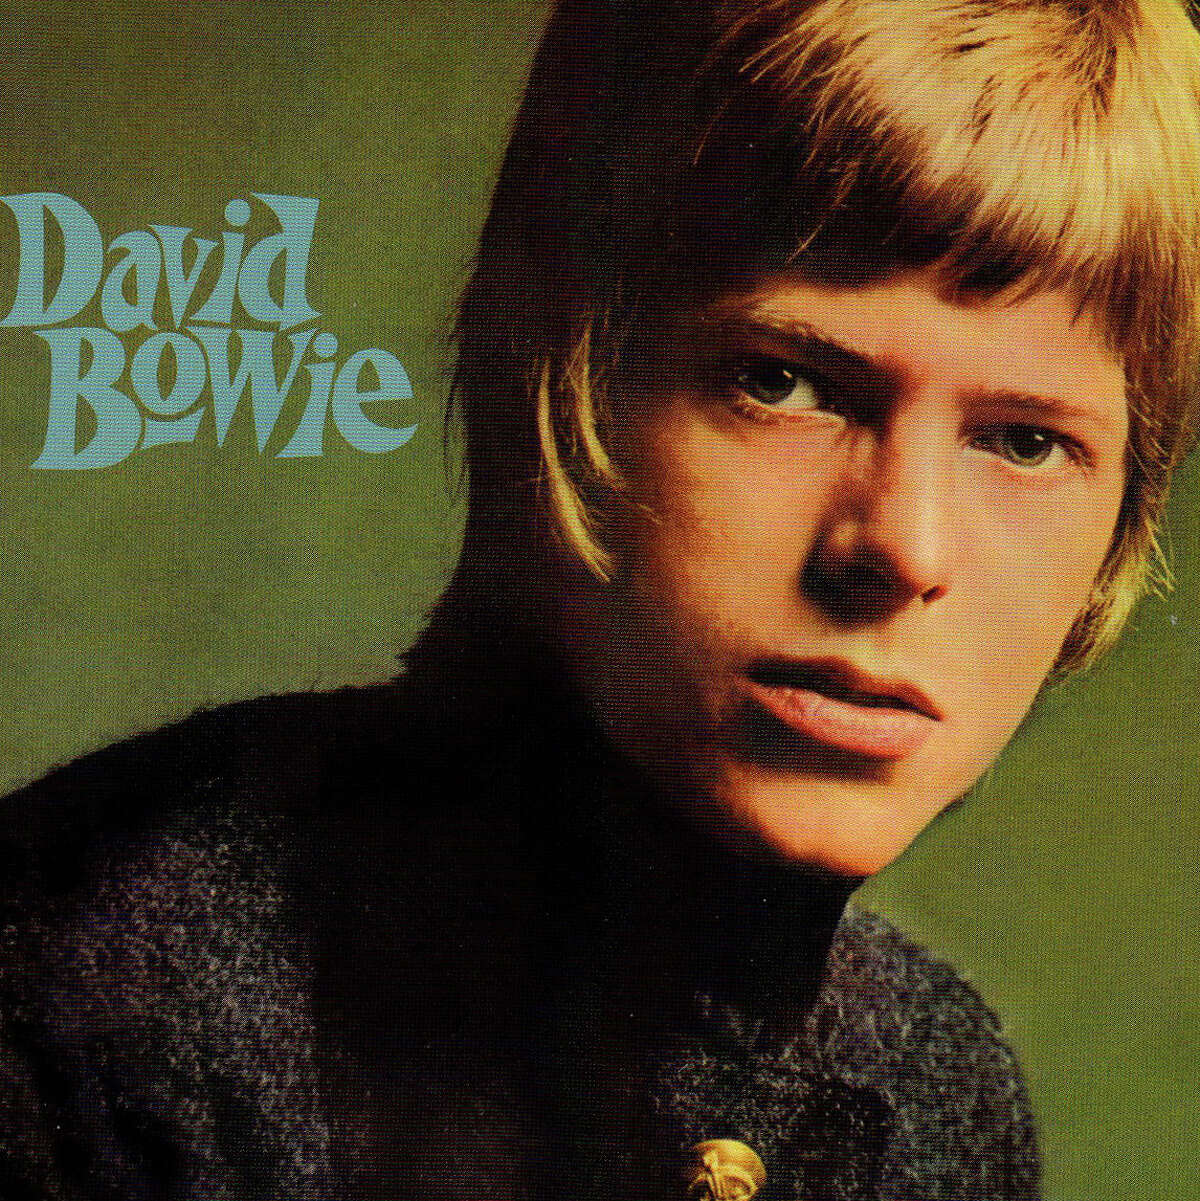 Here's a look back at David Bowie's album covers through the years. The legendary rocker died Sunday, Jan. 10, 2016. 1967: David Bowie